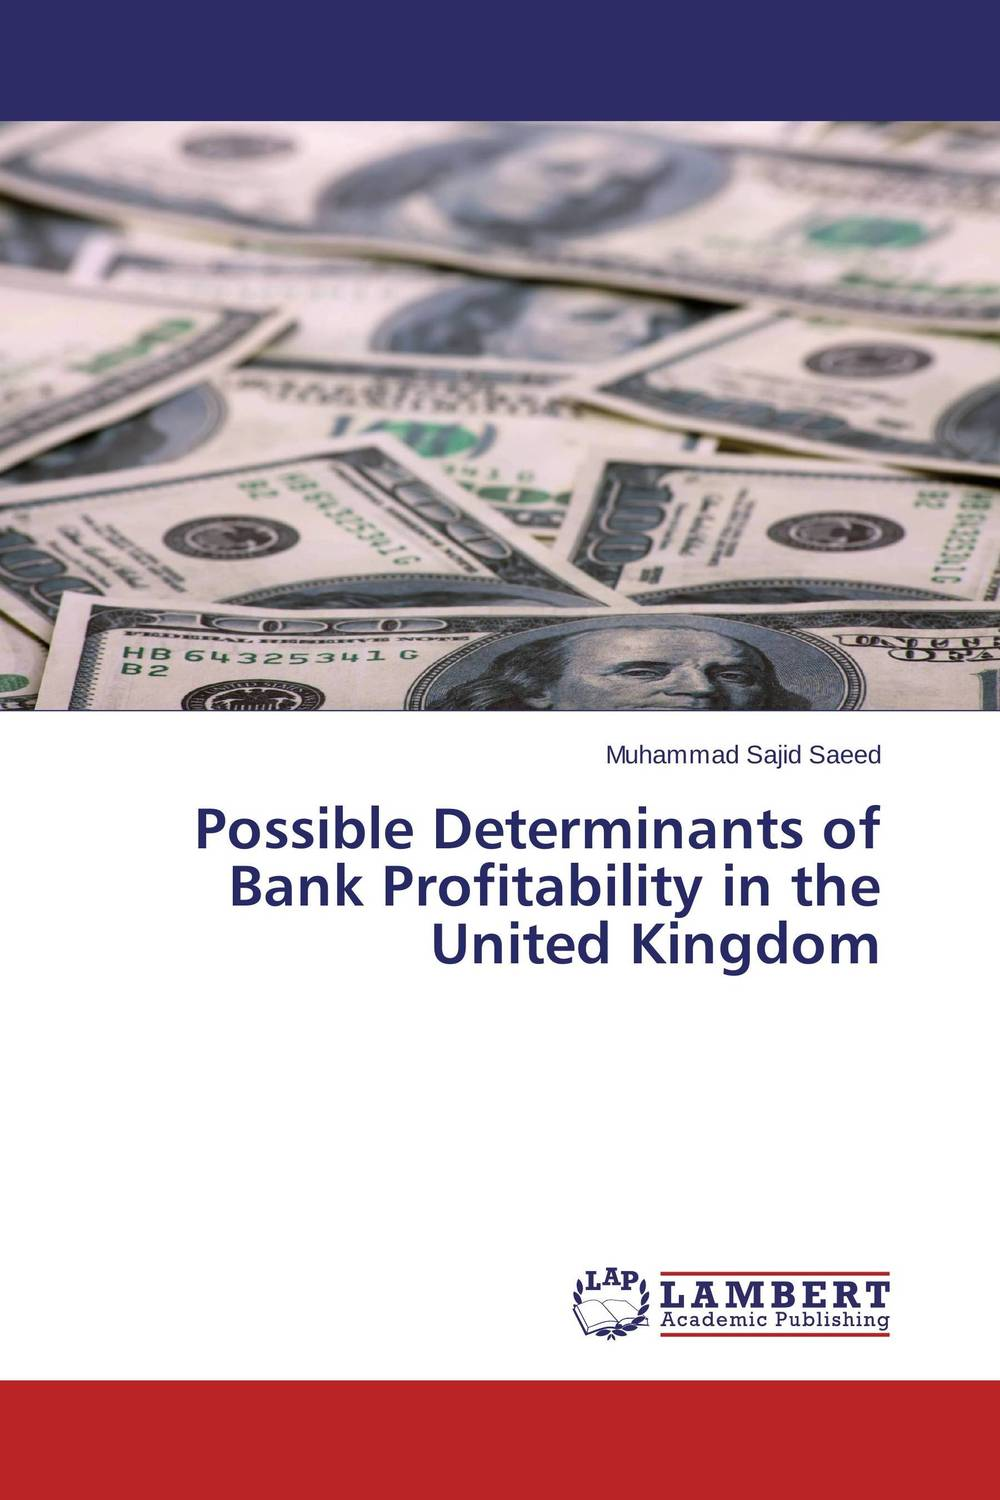 Possible Determinants of Bank Profitability in the United Kingdom impact of the handicraft industry on the environment